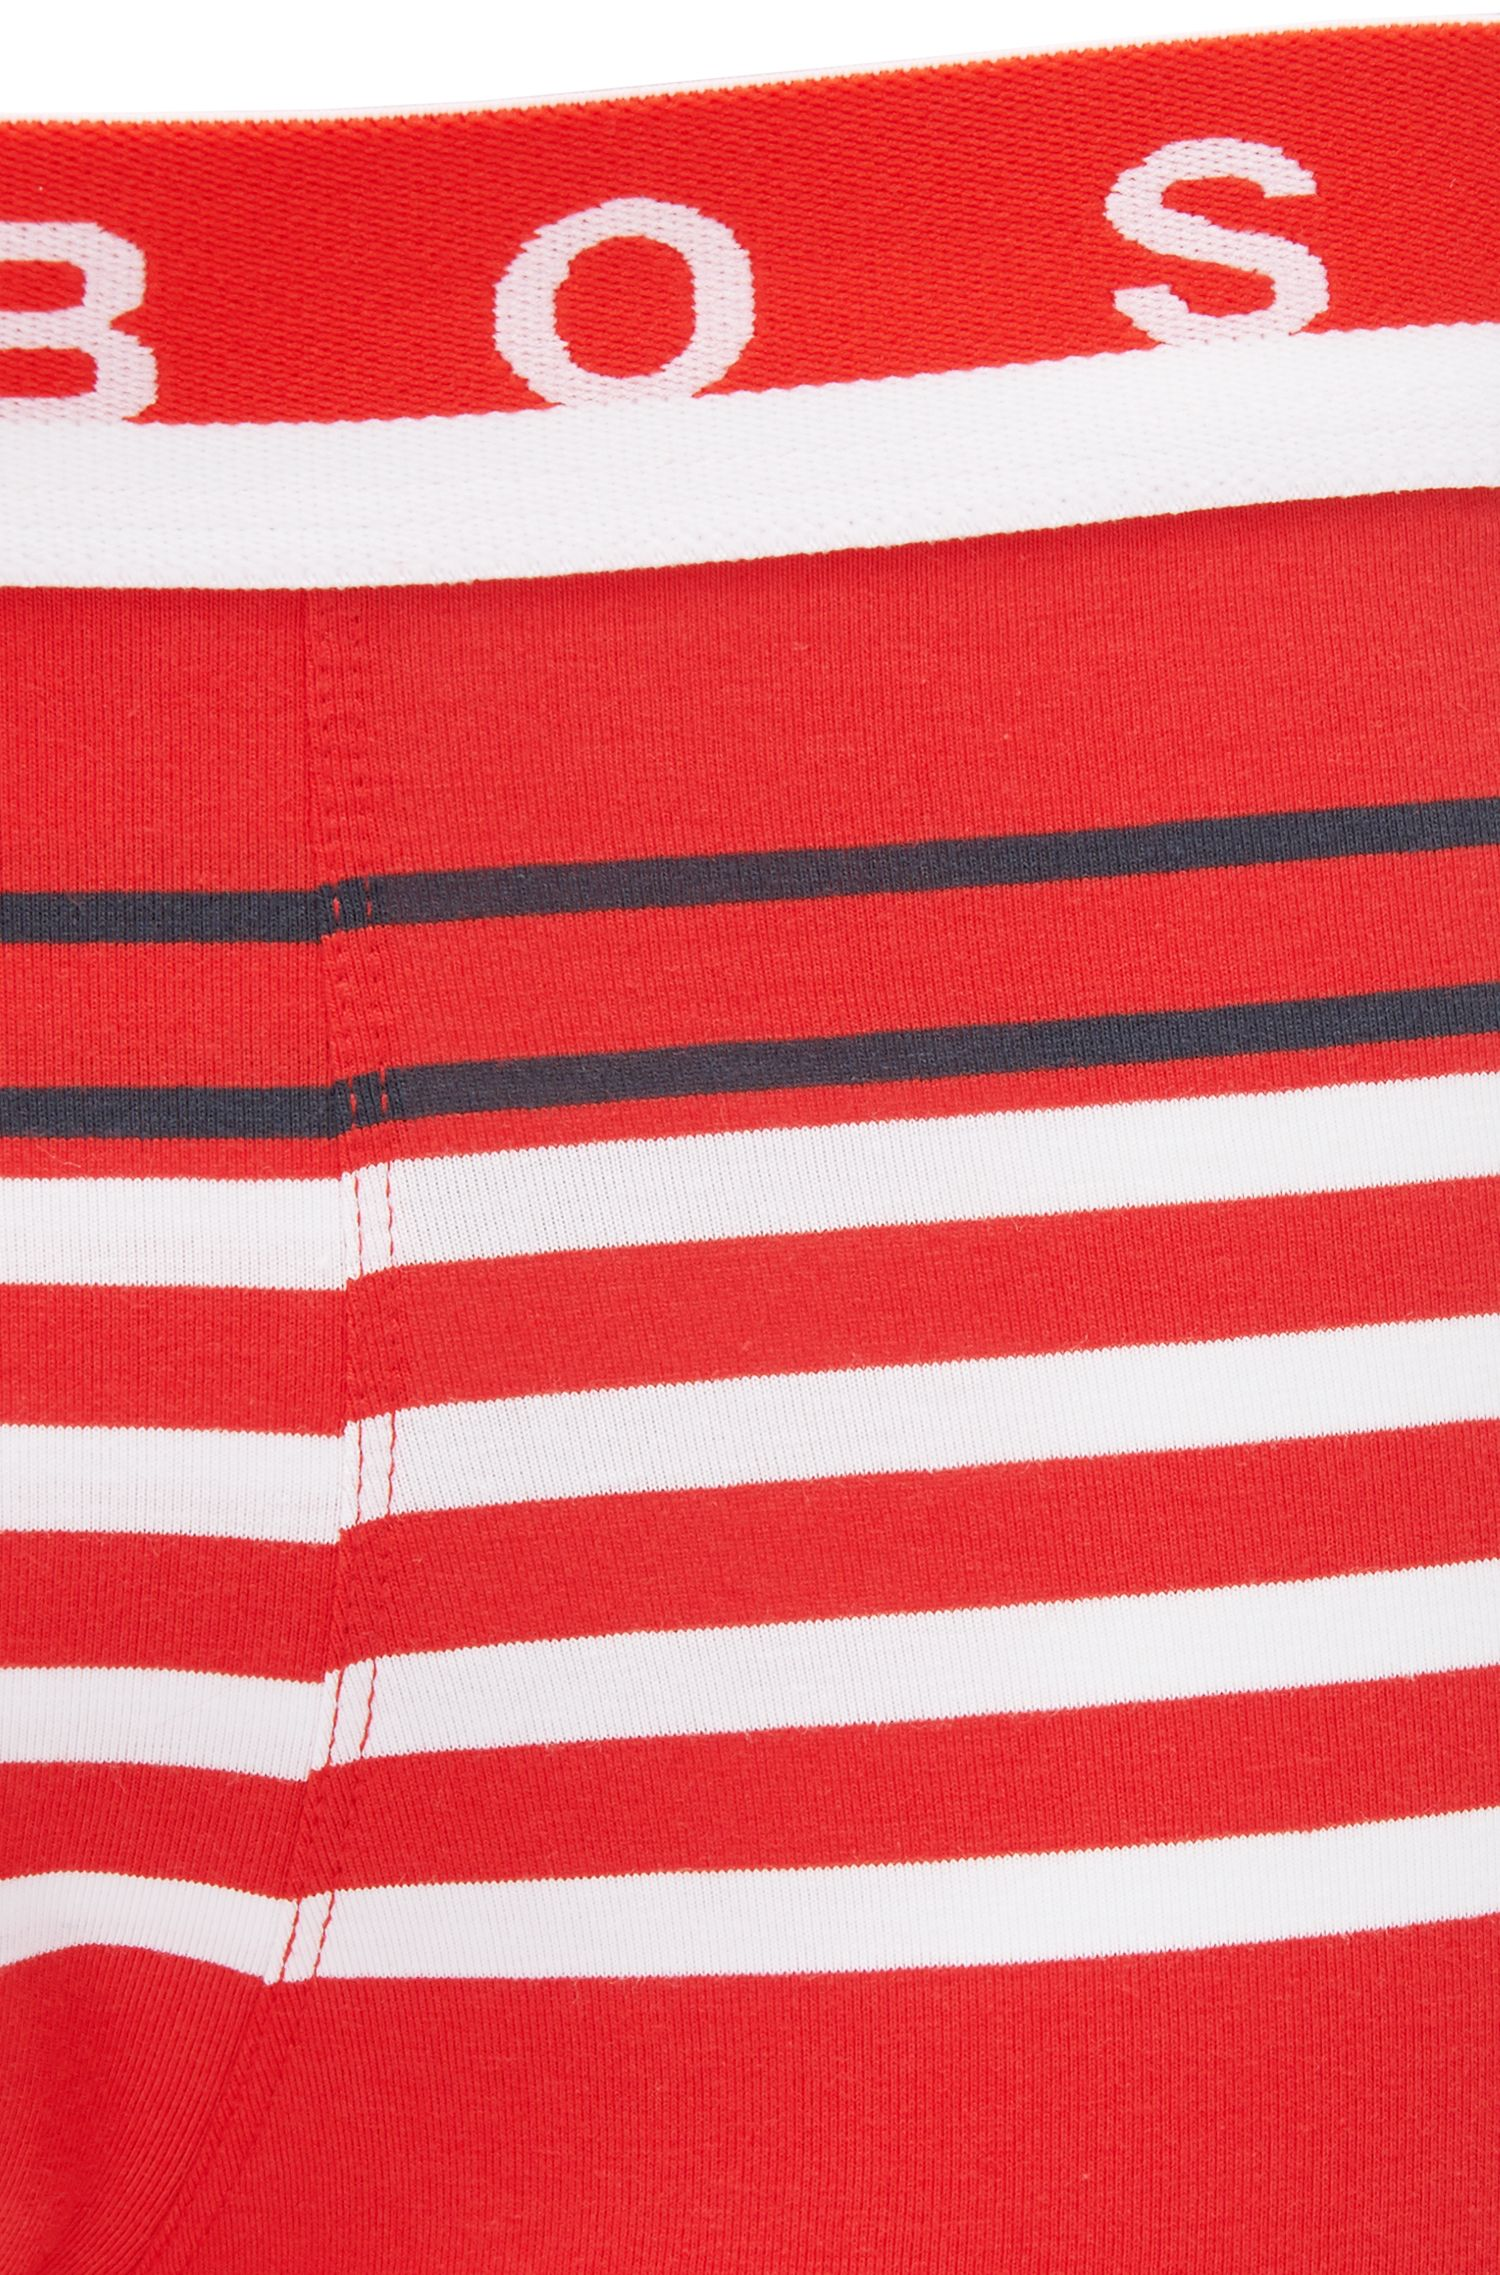 Striped Trunk | Trunk Multistripes